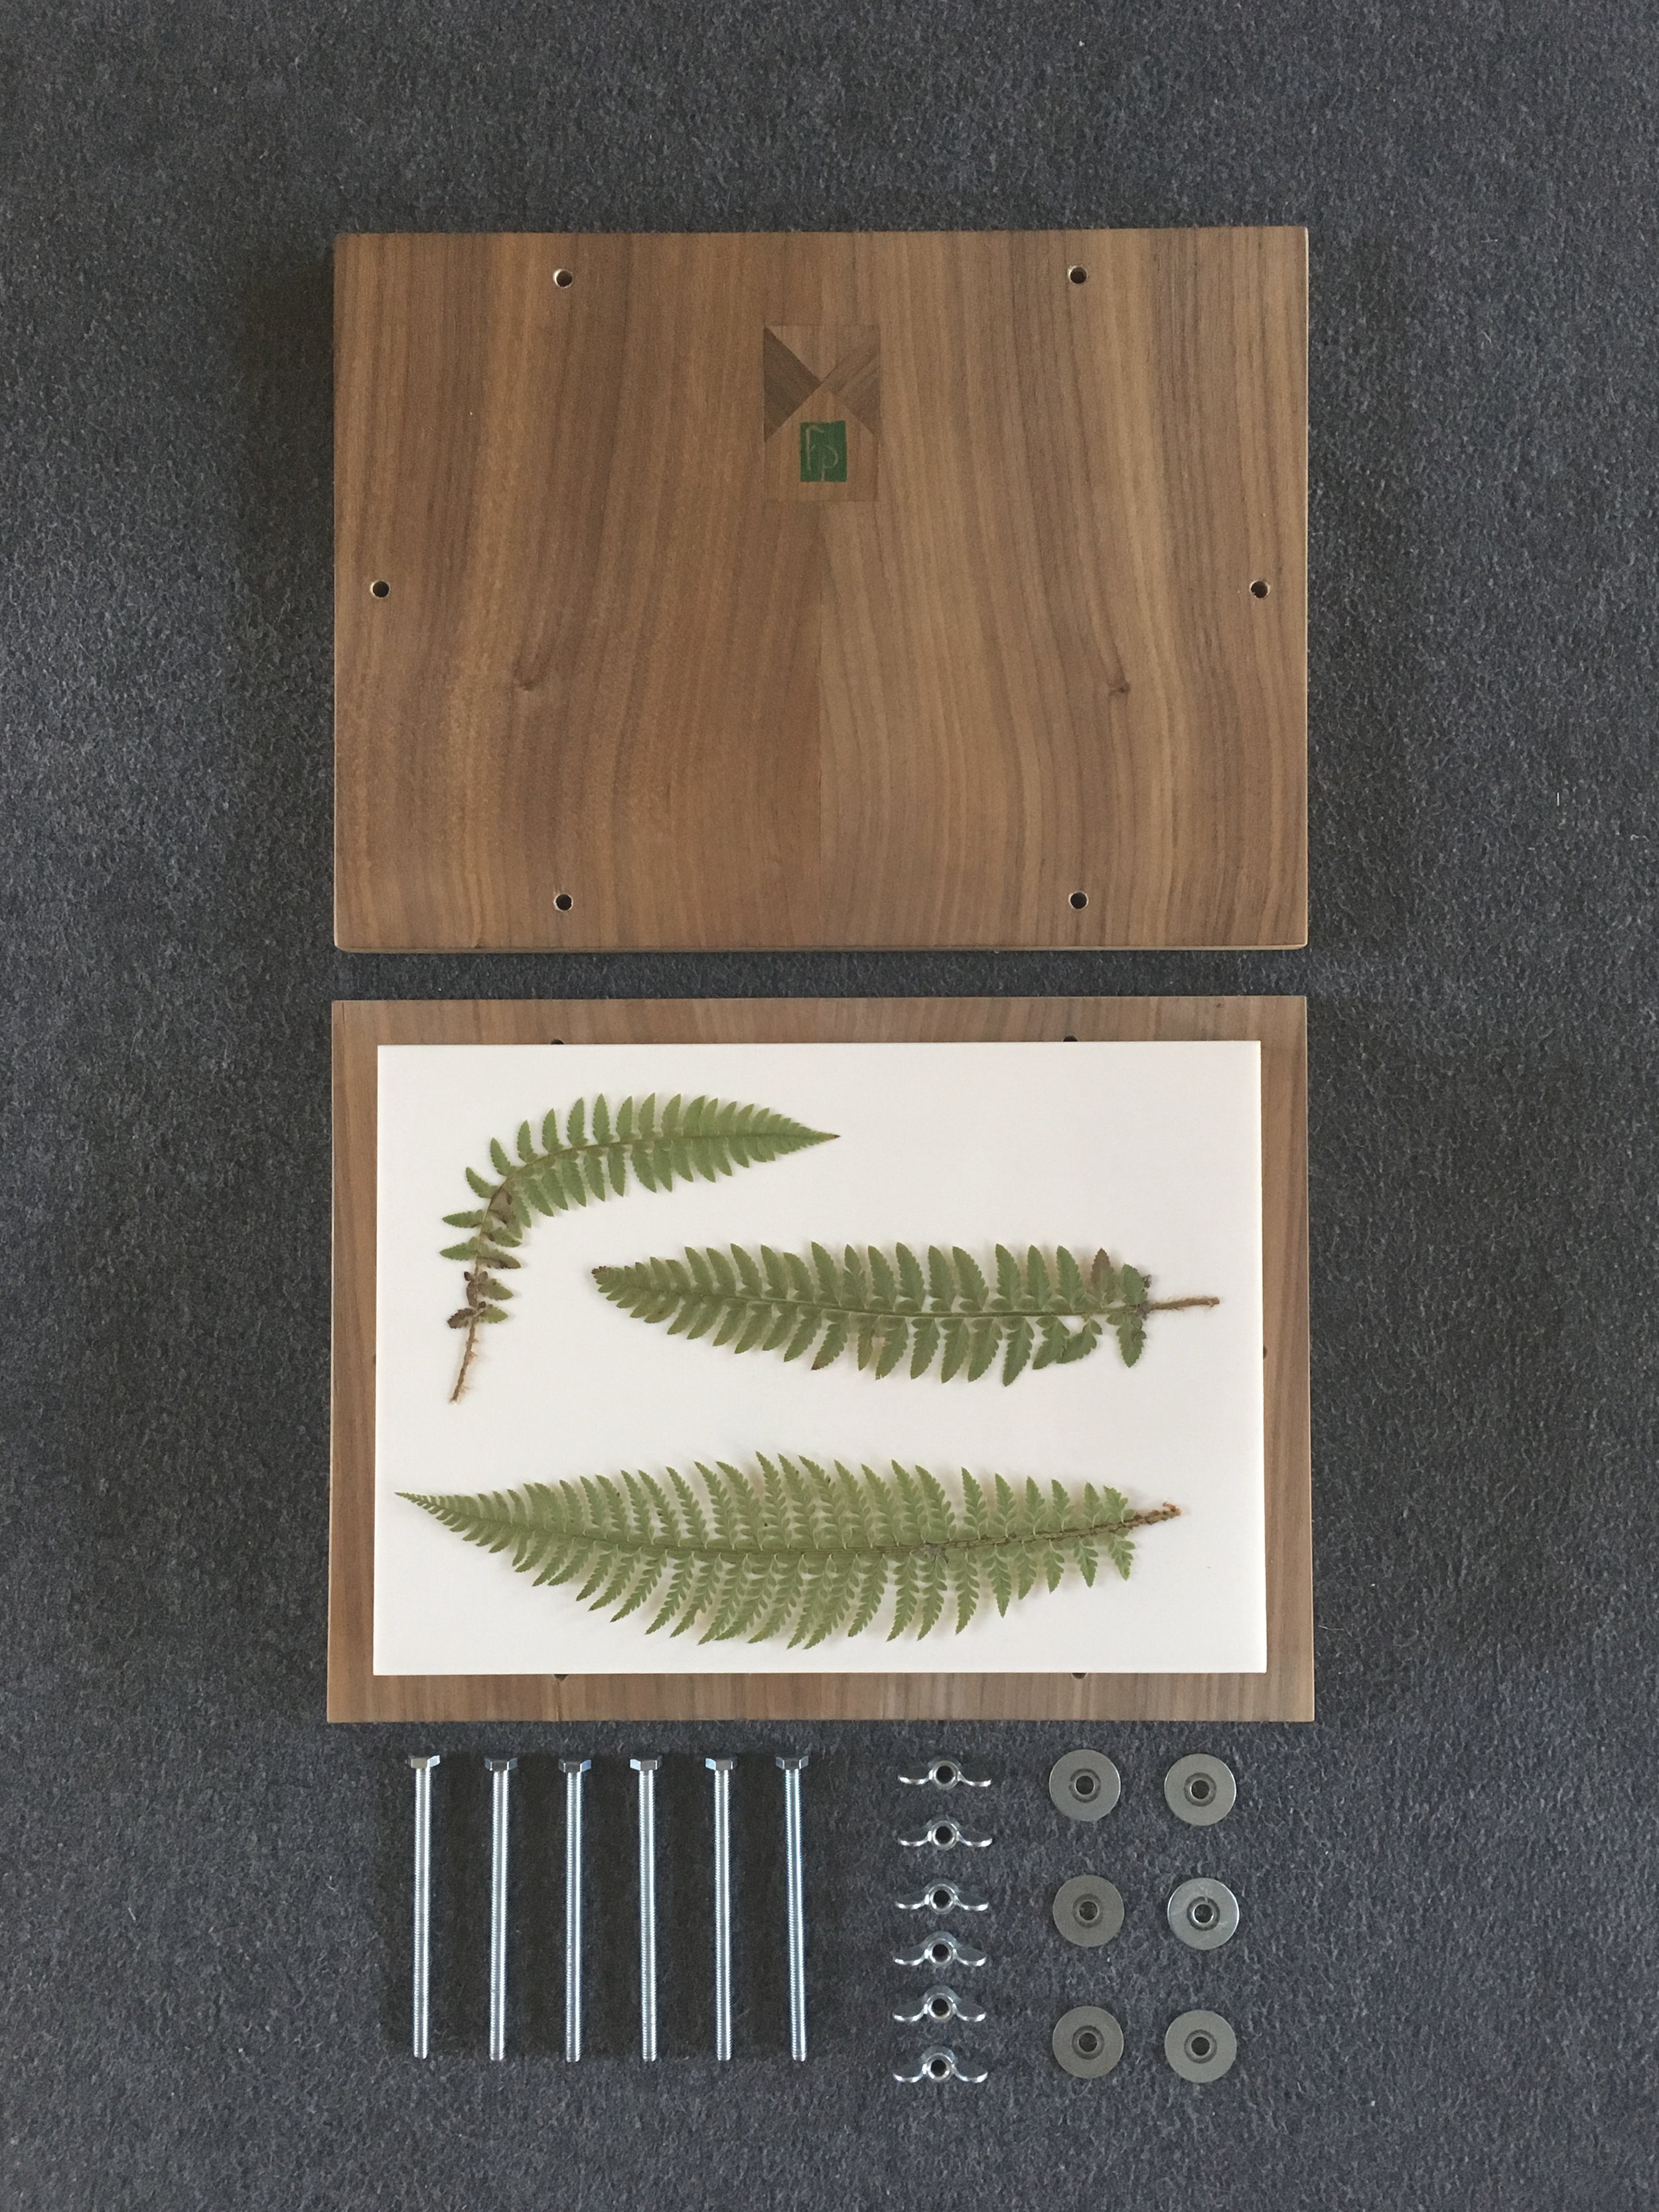 herbarium essentials - Start your own personal herbarium with these custom-designed, handmade plant presses and other essential supplies.